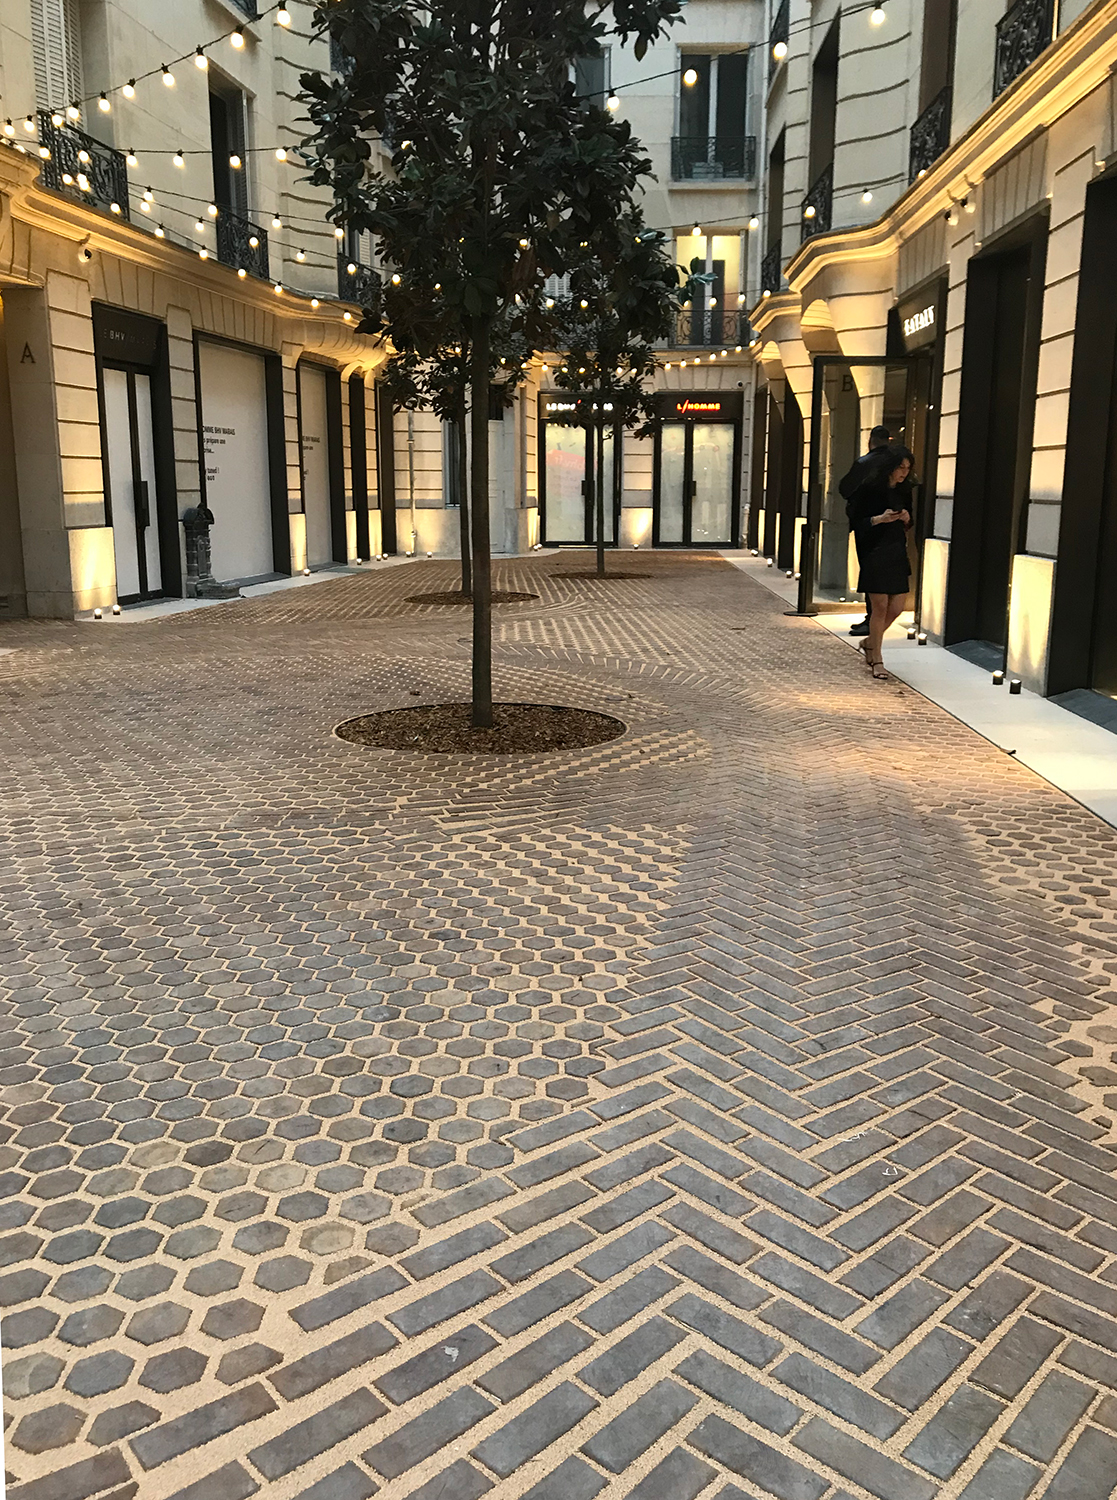 Les-Cours-de-BHV-Galeries-Lafayette-Paris-le-Marasi-retail-France-Hôtel-de-Ville-courtyard-shopping-Jamie-Fobert-Architects-wooden-floor-timber-paving (3)